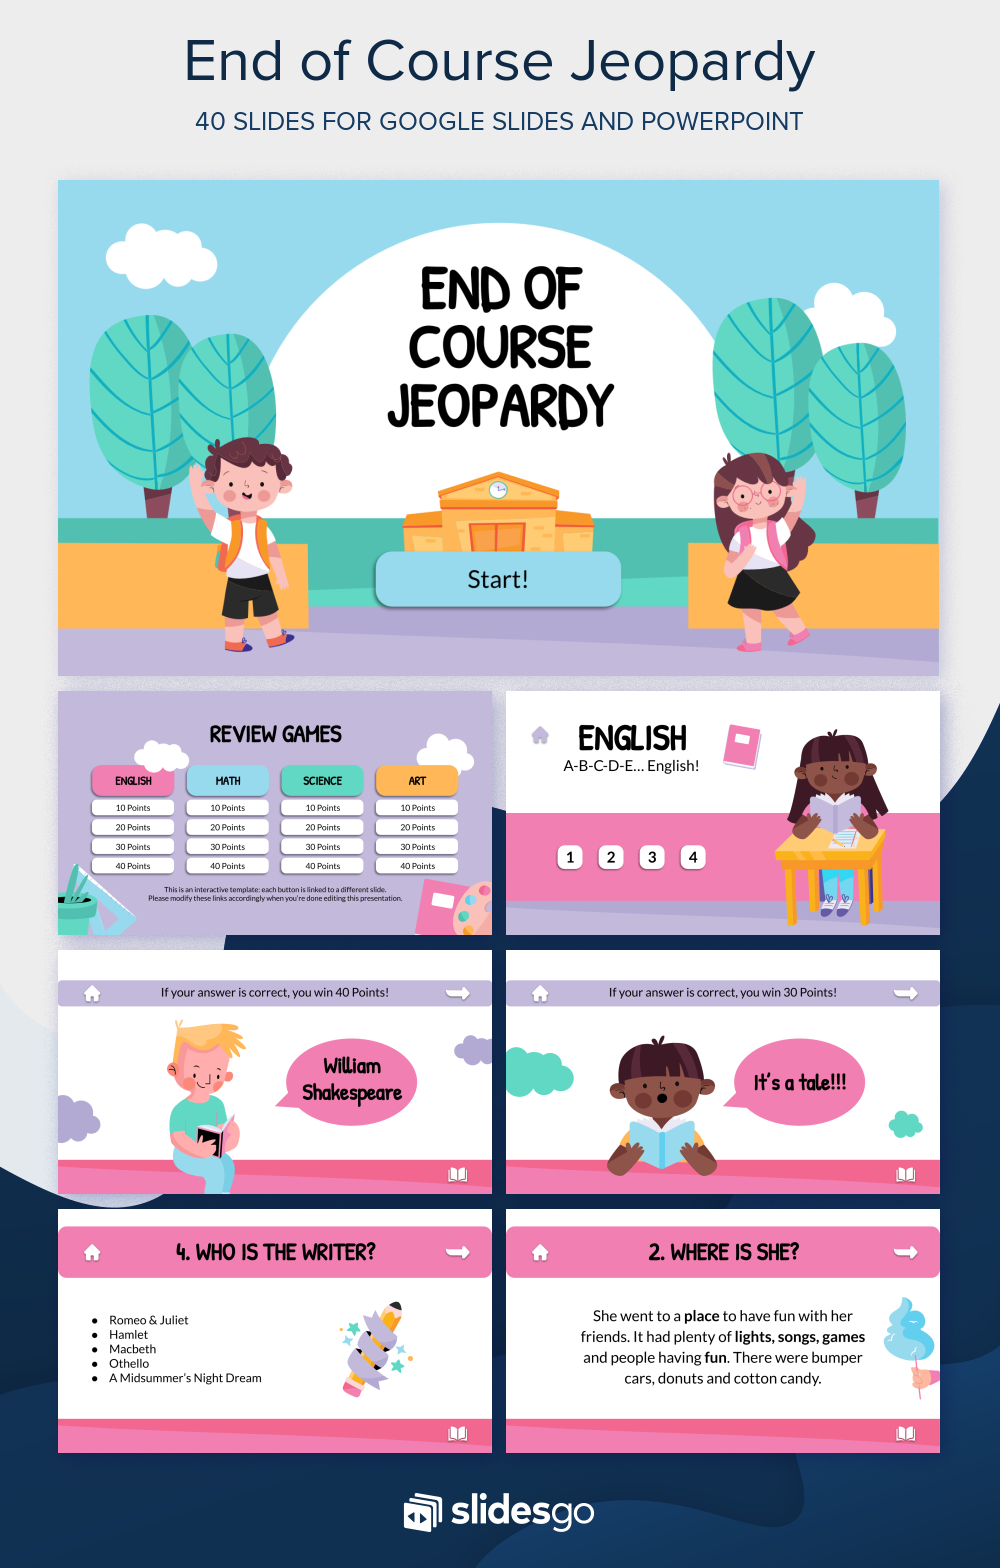 Download Our Interactive End Of Course Jeopardy Template And Make Learning F Powerpoint Slide Designs Free Powerpoint Presentations Powerpoint Design Templates